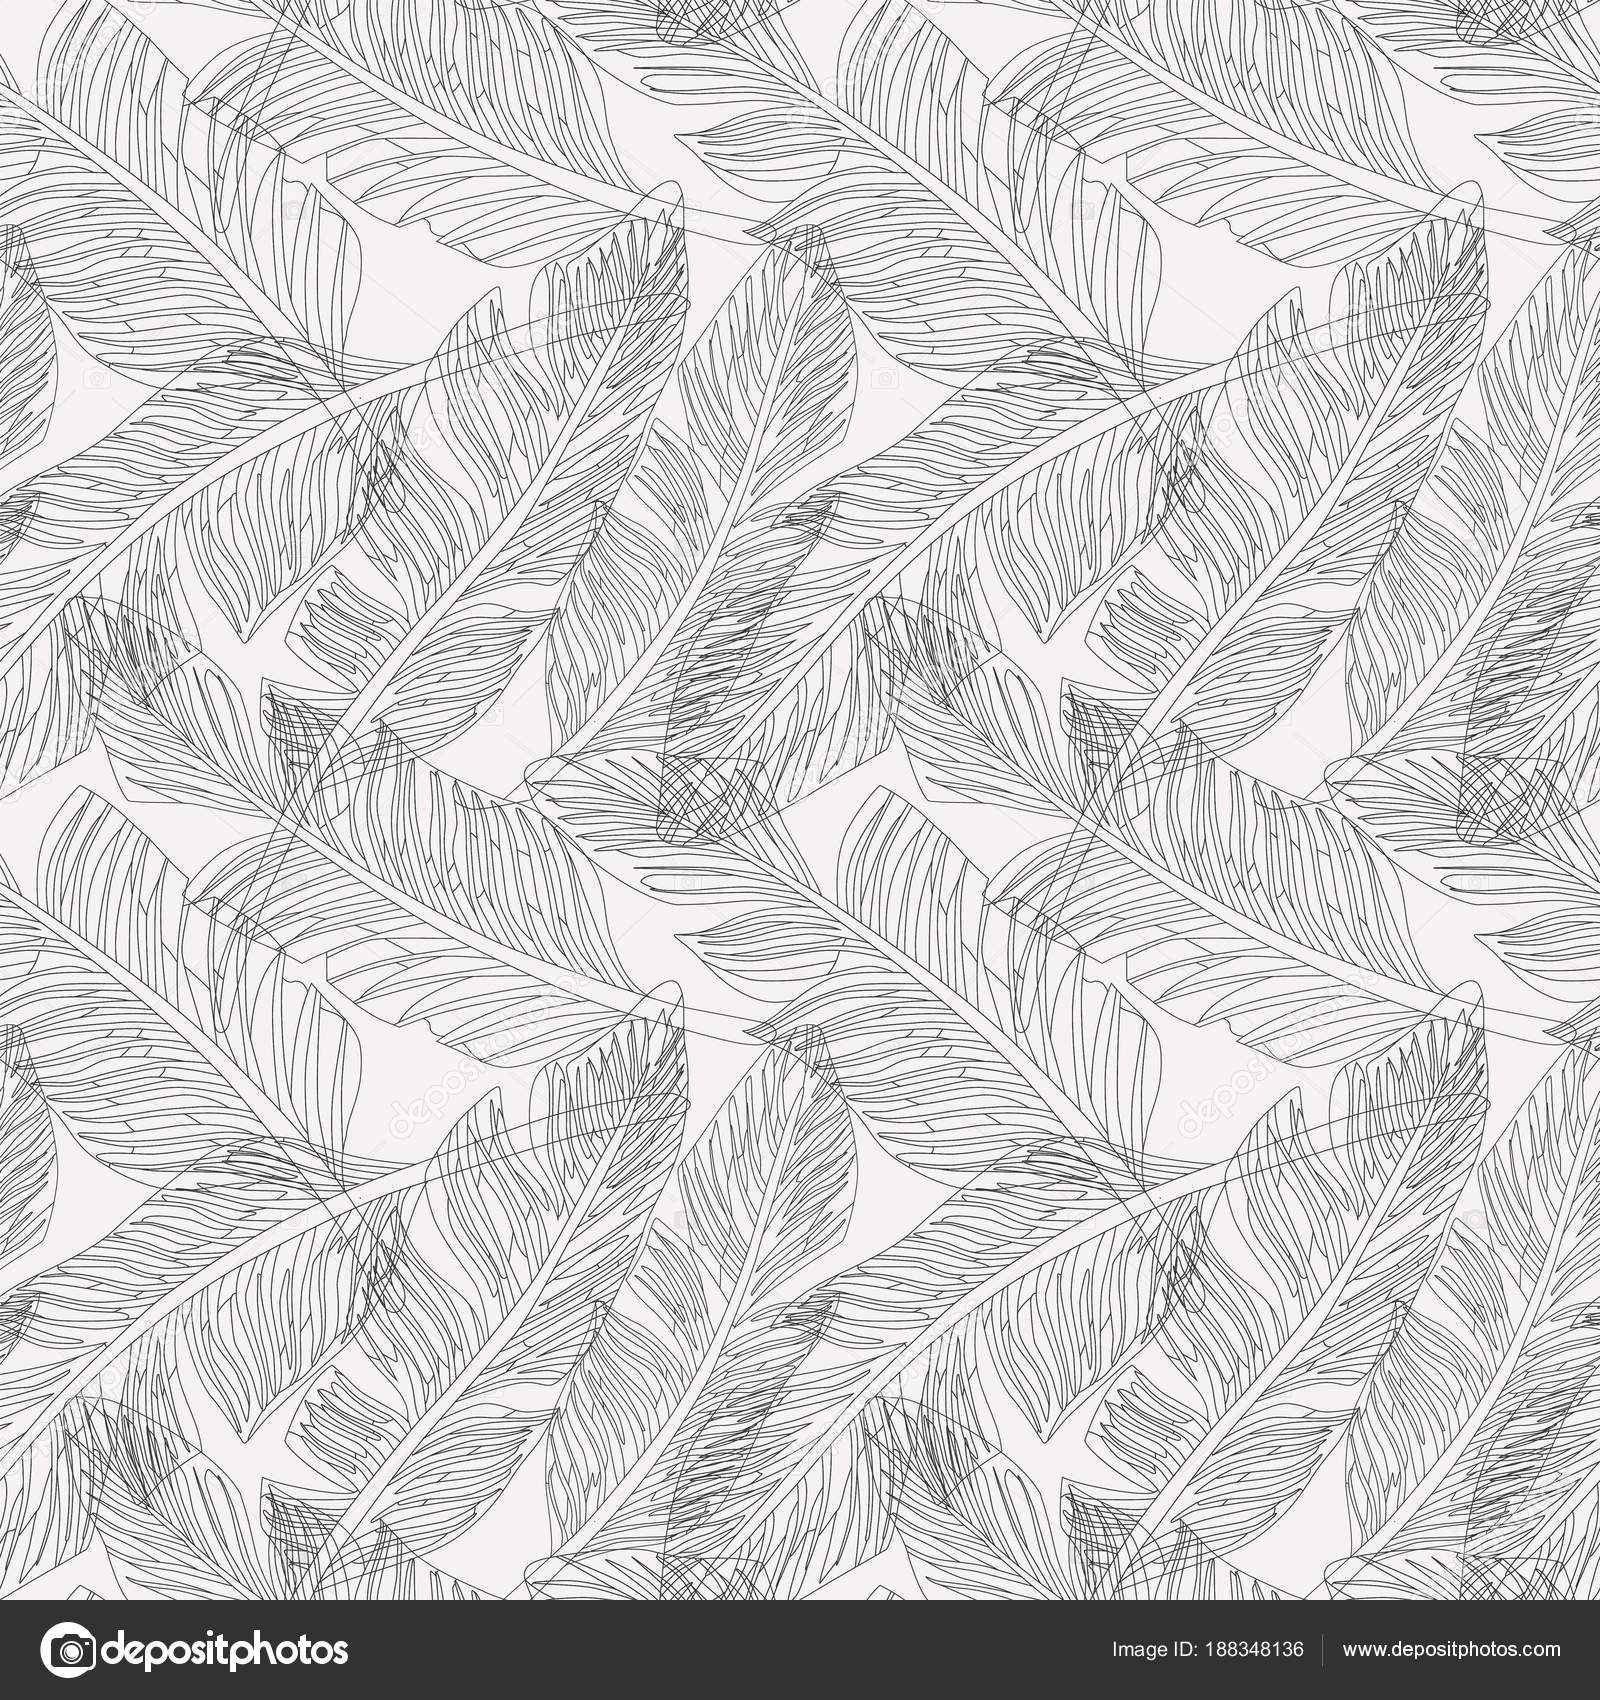 Palm Leaves Outline Outline Palm Leaves White Background Seamless Pattern Stock Vector C Berry2046 188348136 ▪ 30 black outline (see picture 2). https depositphotos com 188348136 stock illustration outline palm leaves white background html